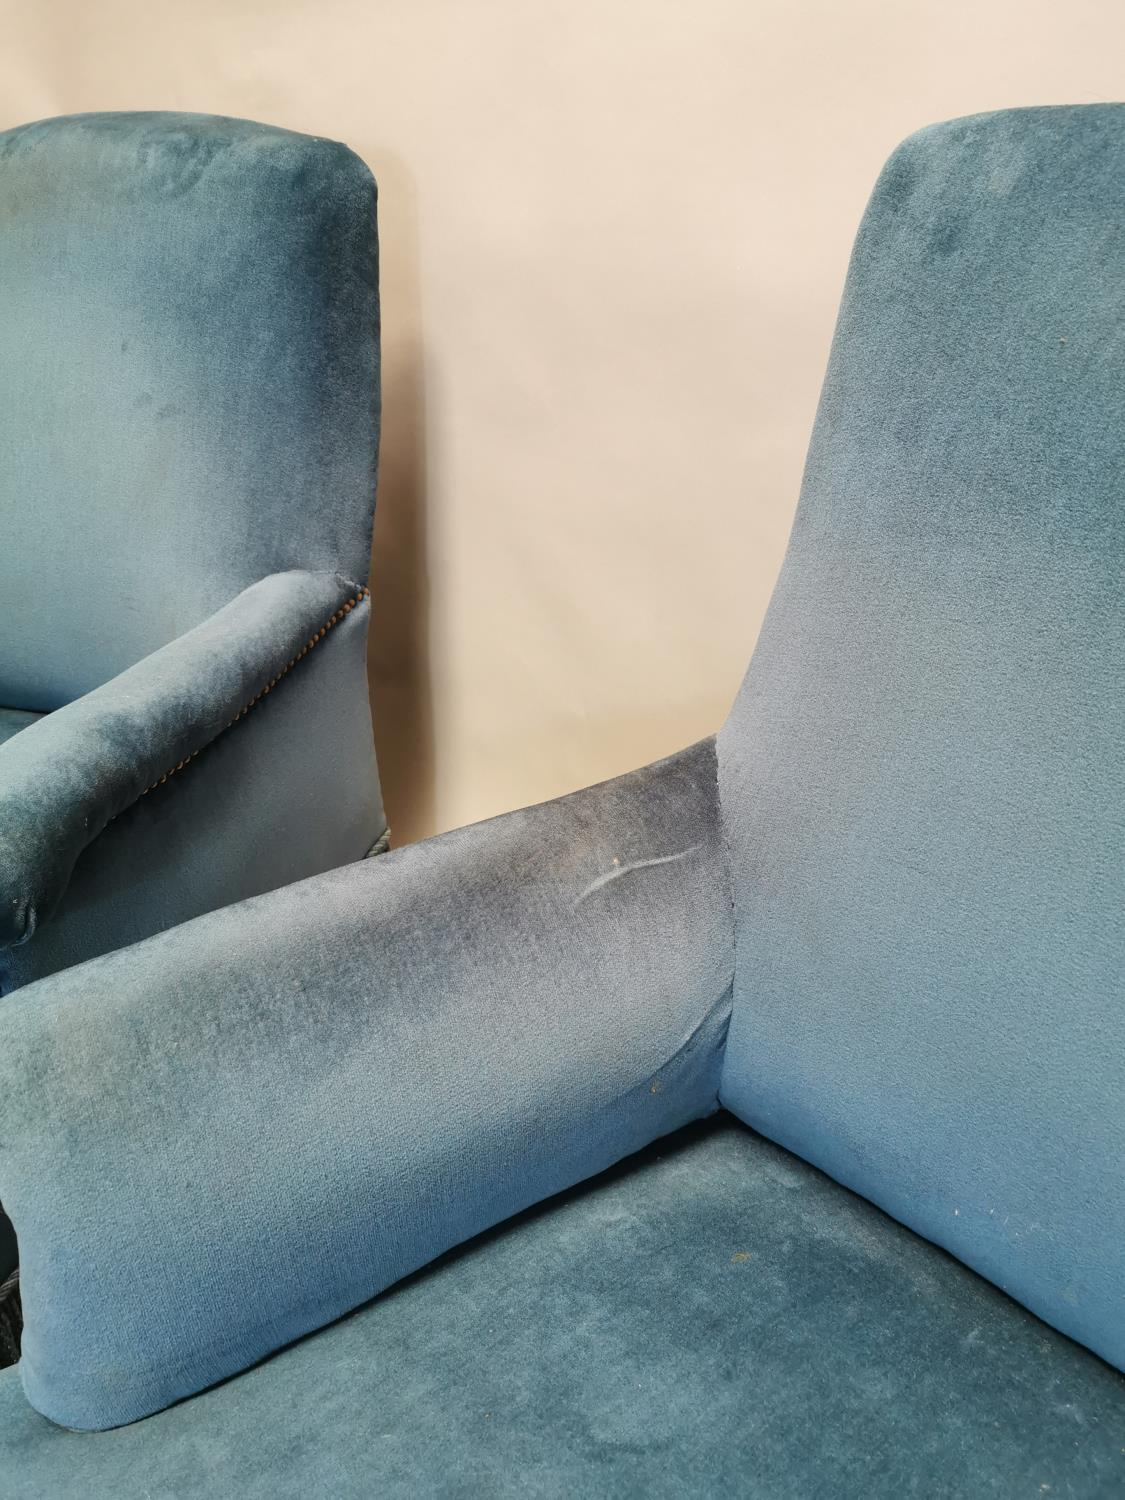 Pair of 19th C. mahogany arm chairs upholstered in blue crush velvet 94 cm H x 80 cm W x 80 cm D - Image 3 of 3